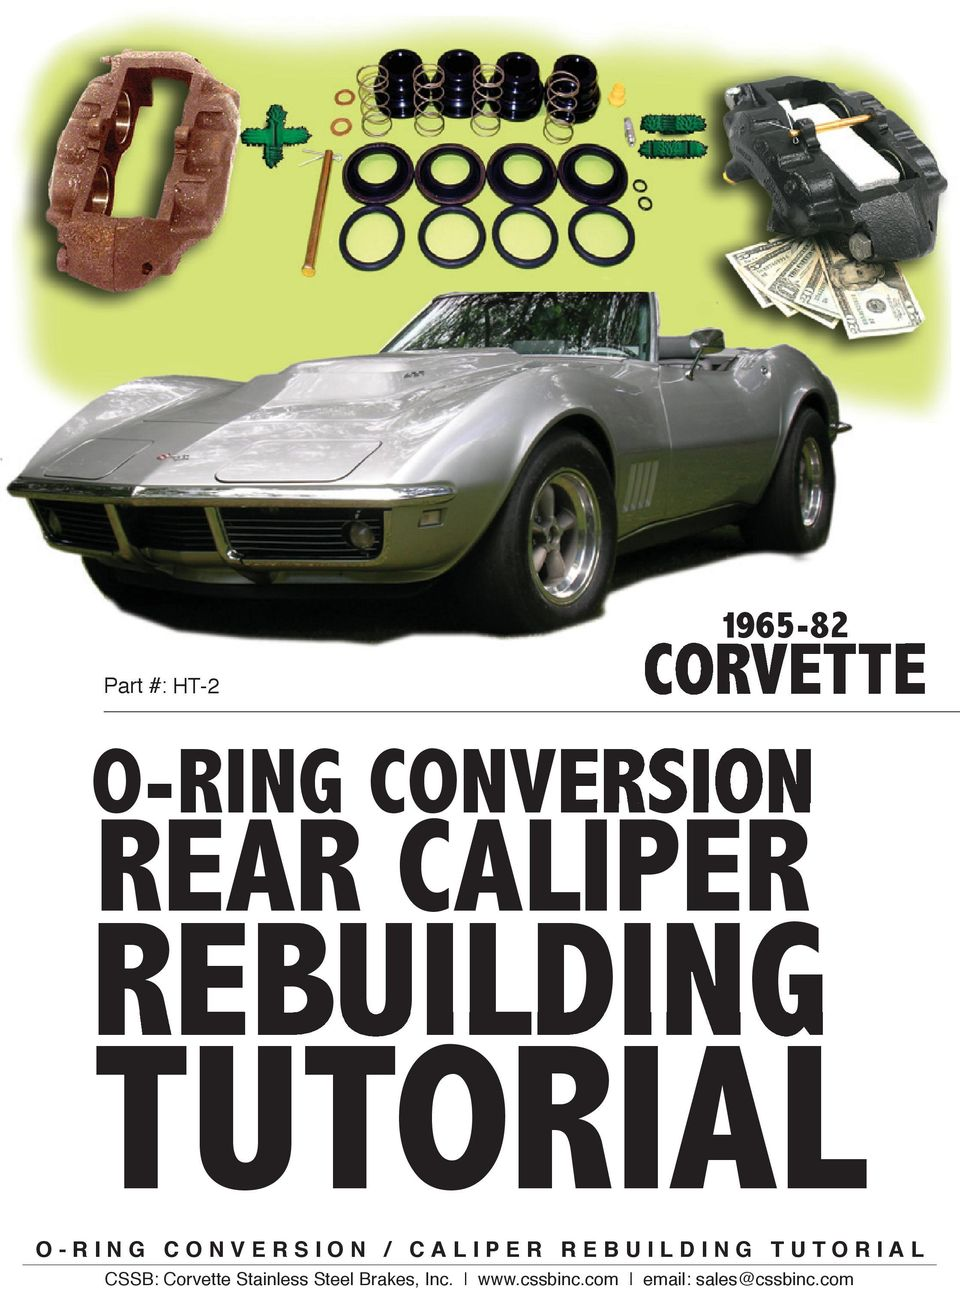 O-RING CONVERSION